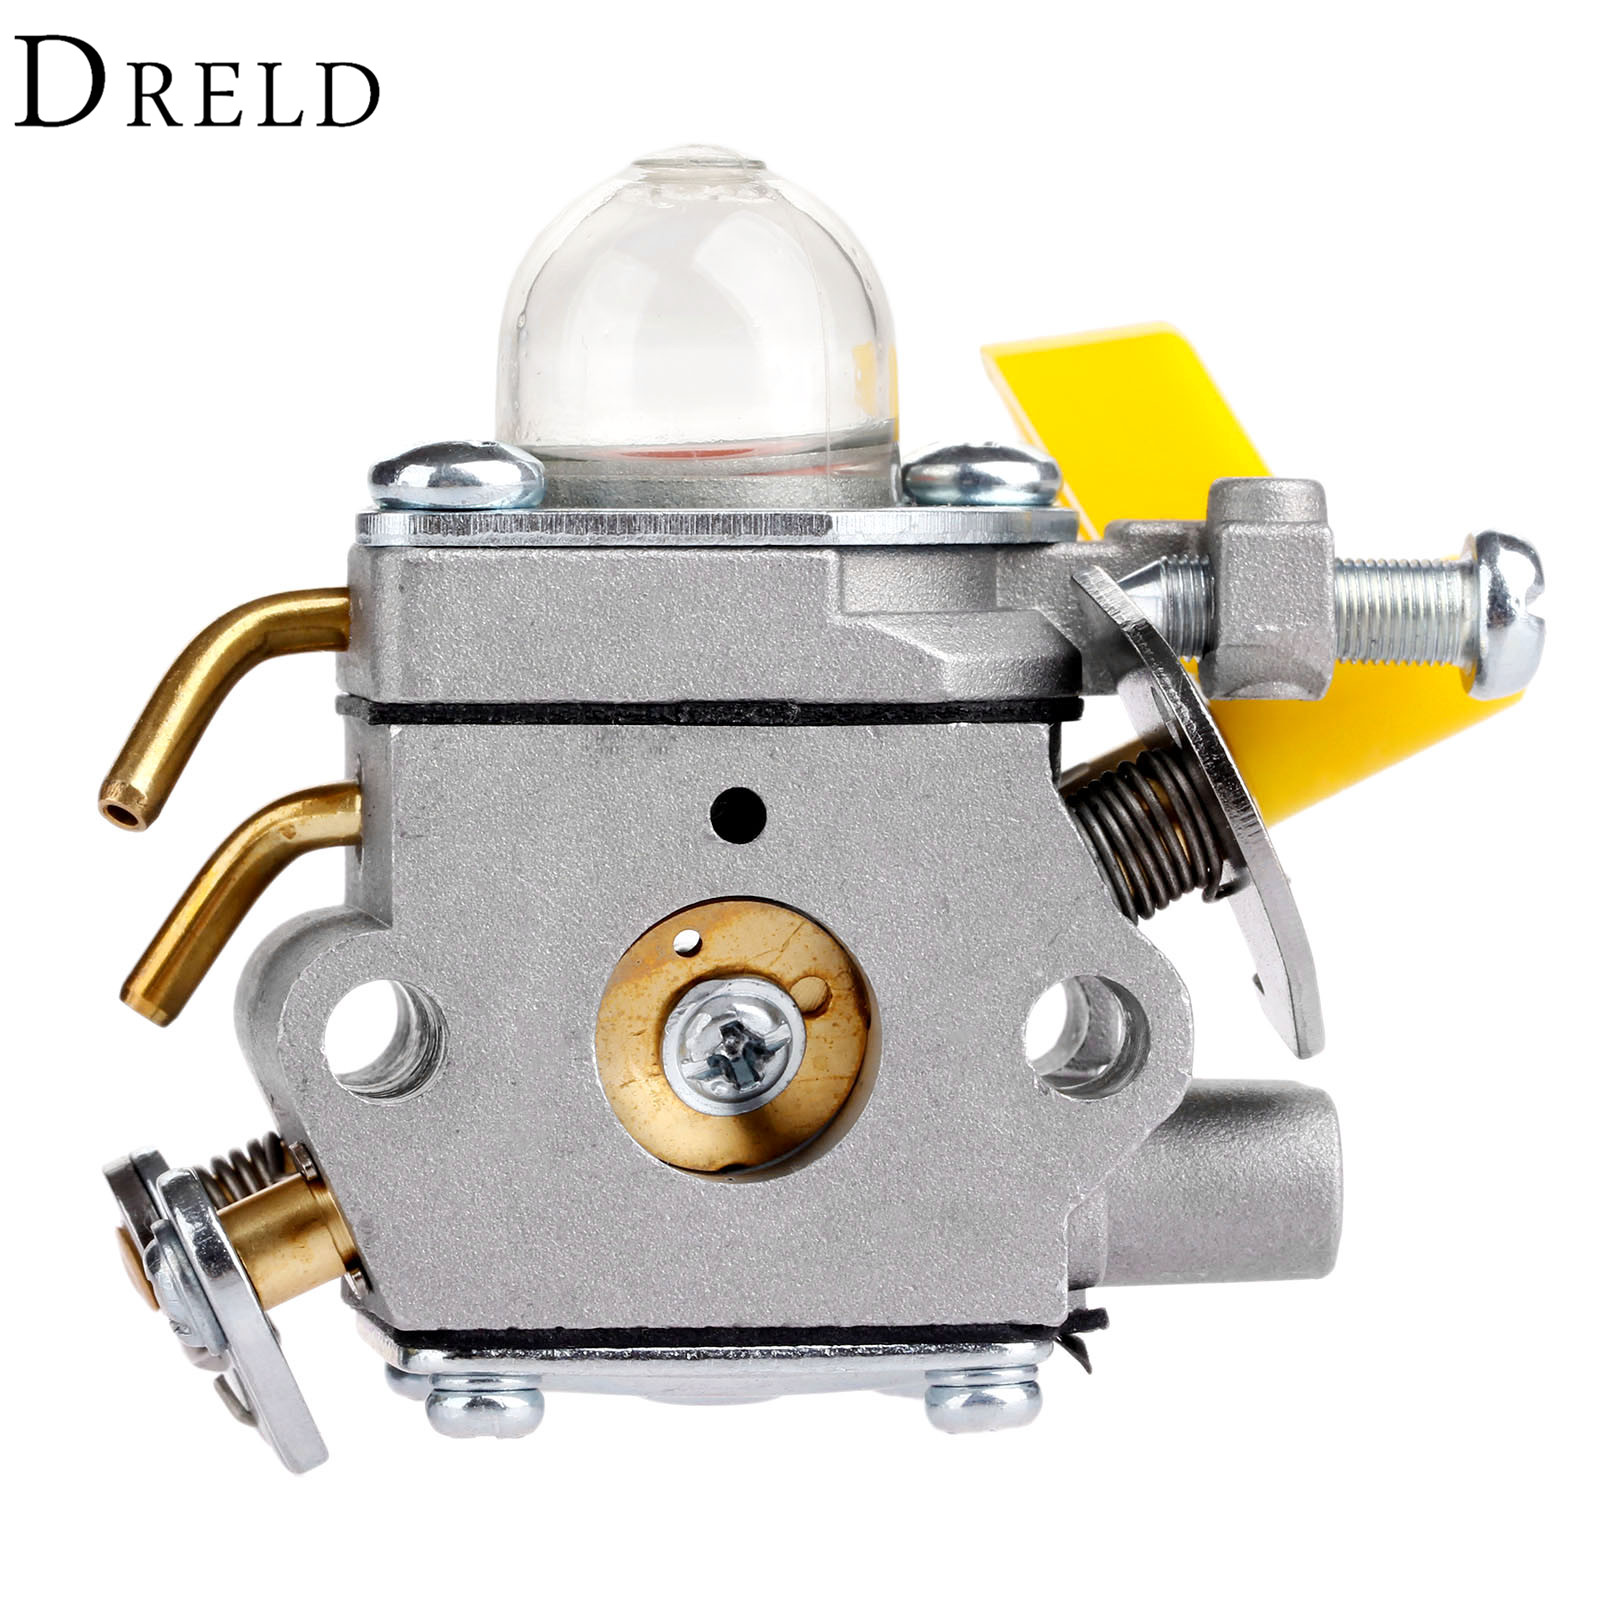 DRELD Carburetor Carb for HOMELITE RYOBI 25cc 26cc Line String Trimmer Backpack Blower Chainsaw Spare Parts Garden Tools Parts high quality carburetor carb carby for husqvarna partner 350 351 370 371 420 chainsaw poulan spare parts walbro 33 29